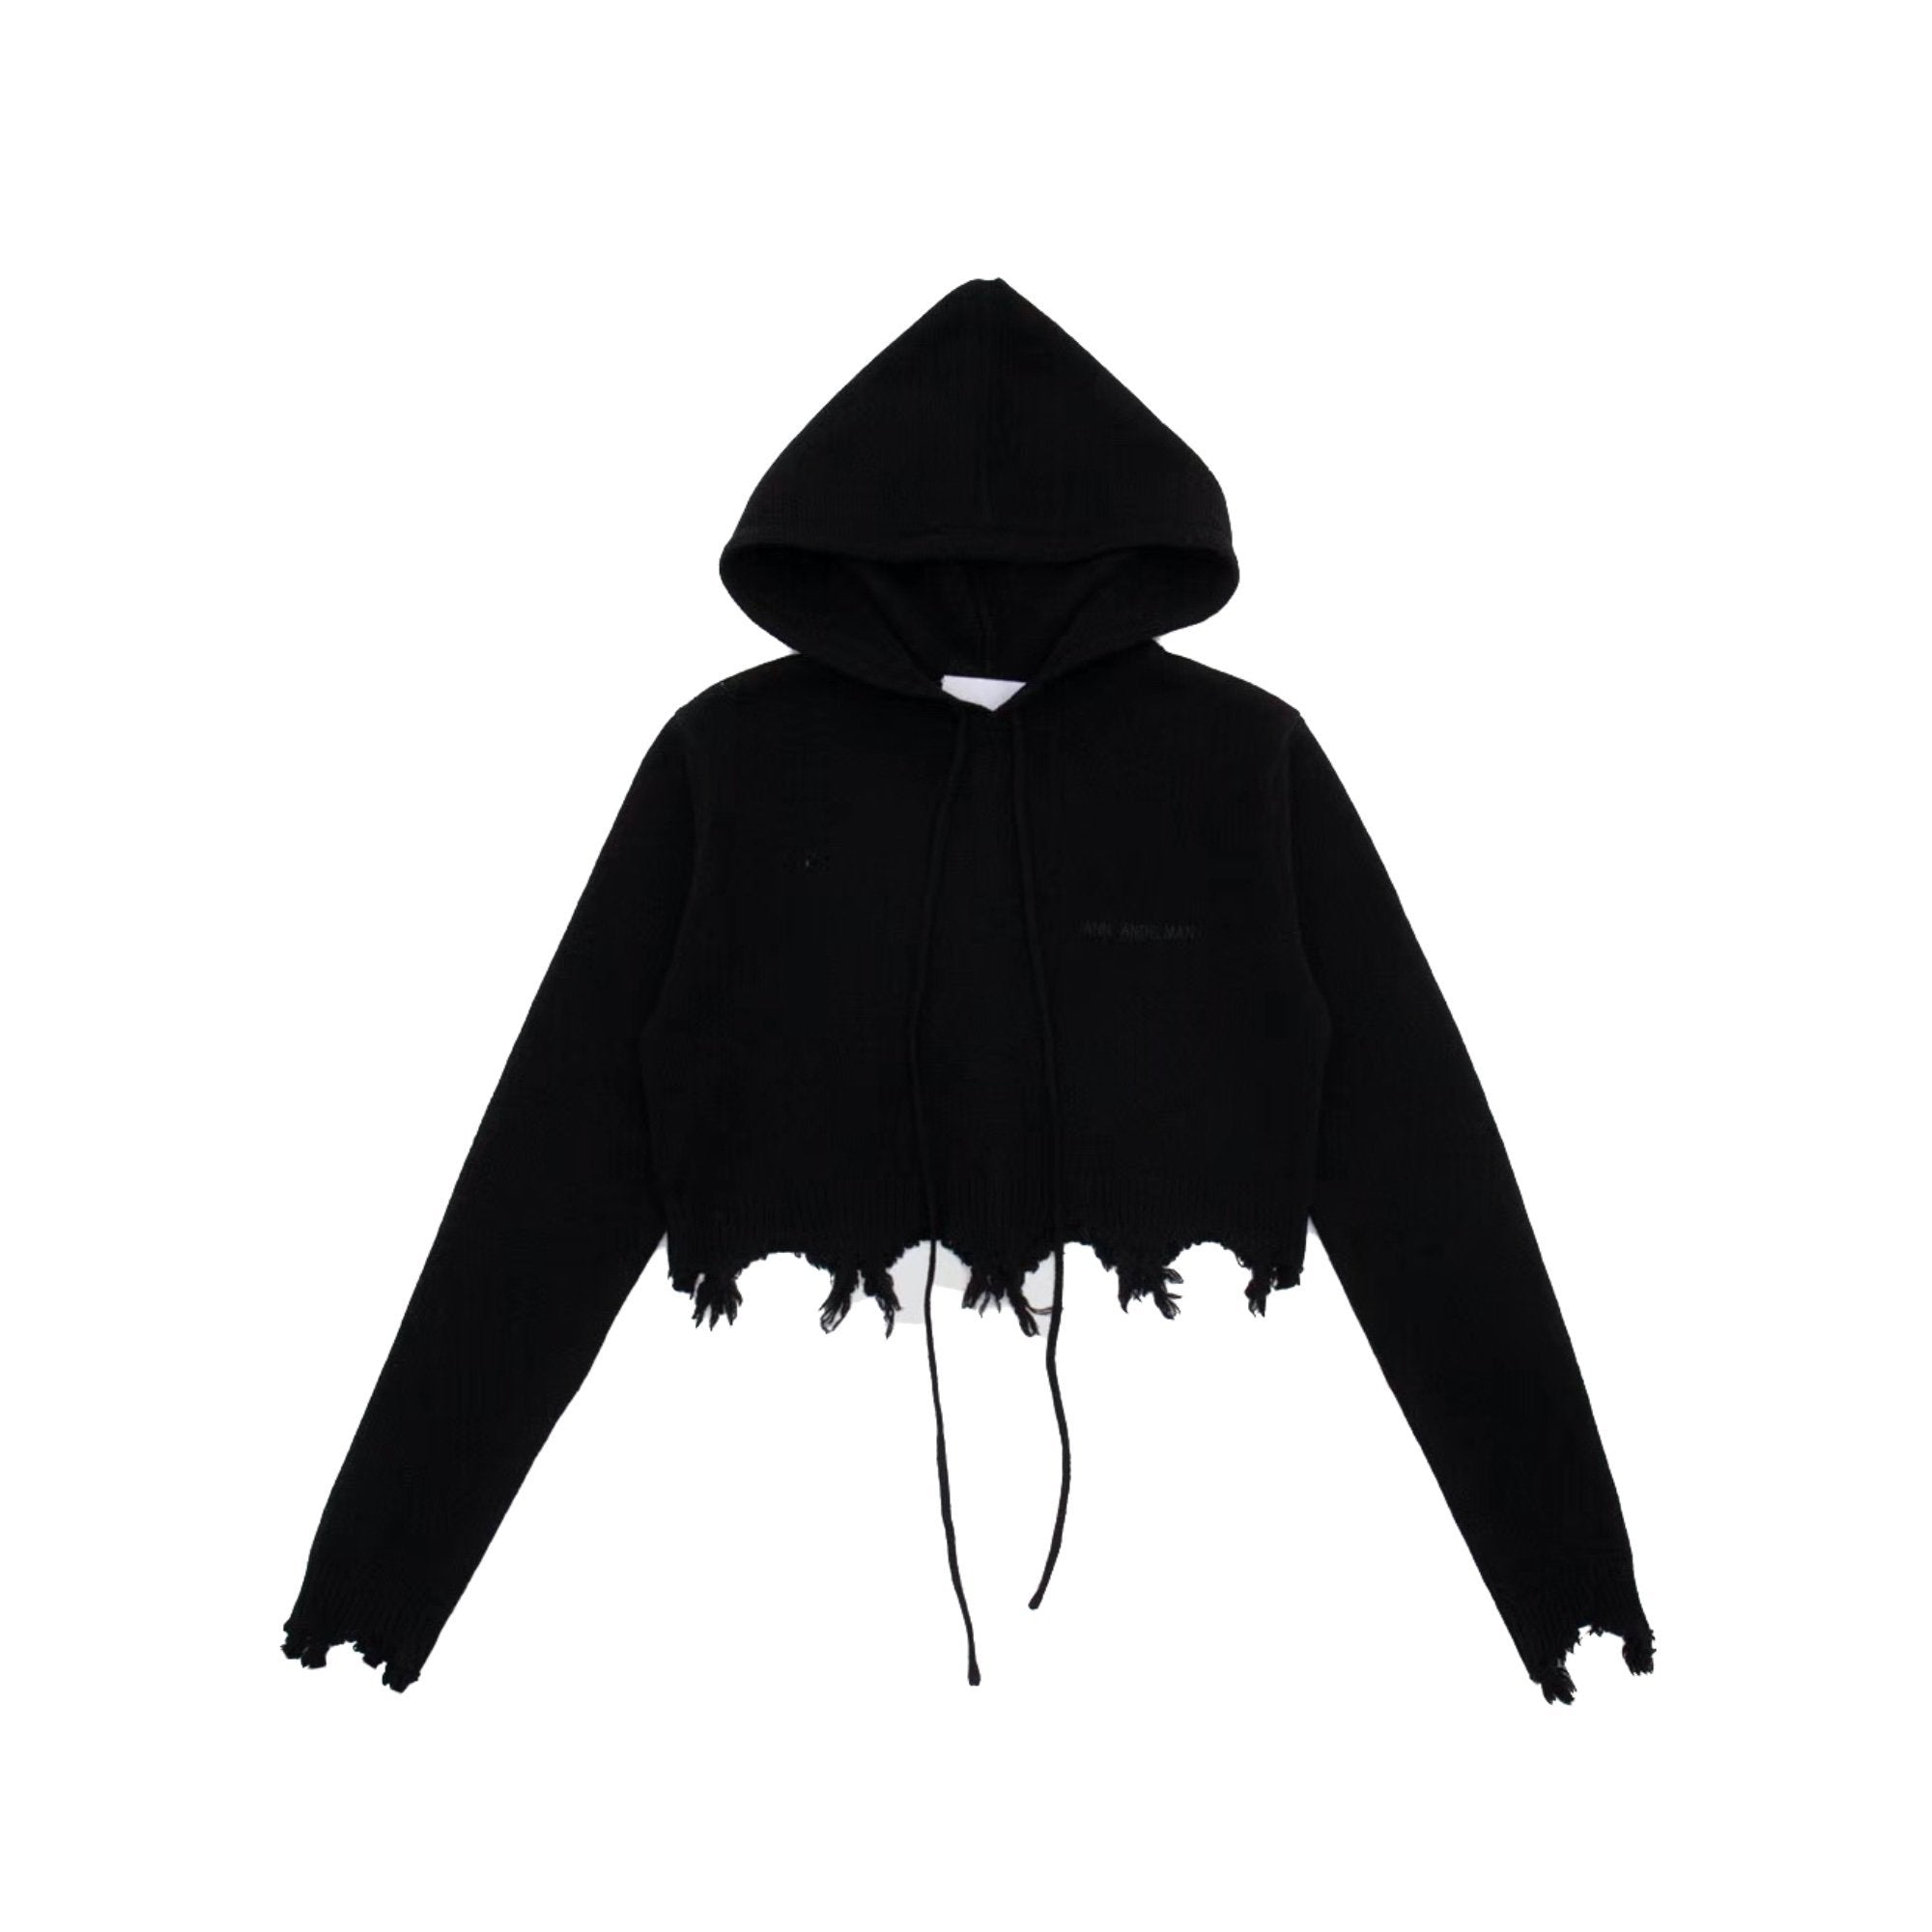 ANN ANDELMAN Destroyed Hoodie Black | MADA IN CHINA